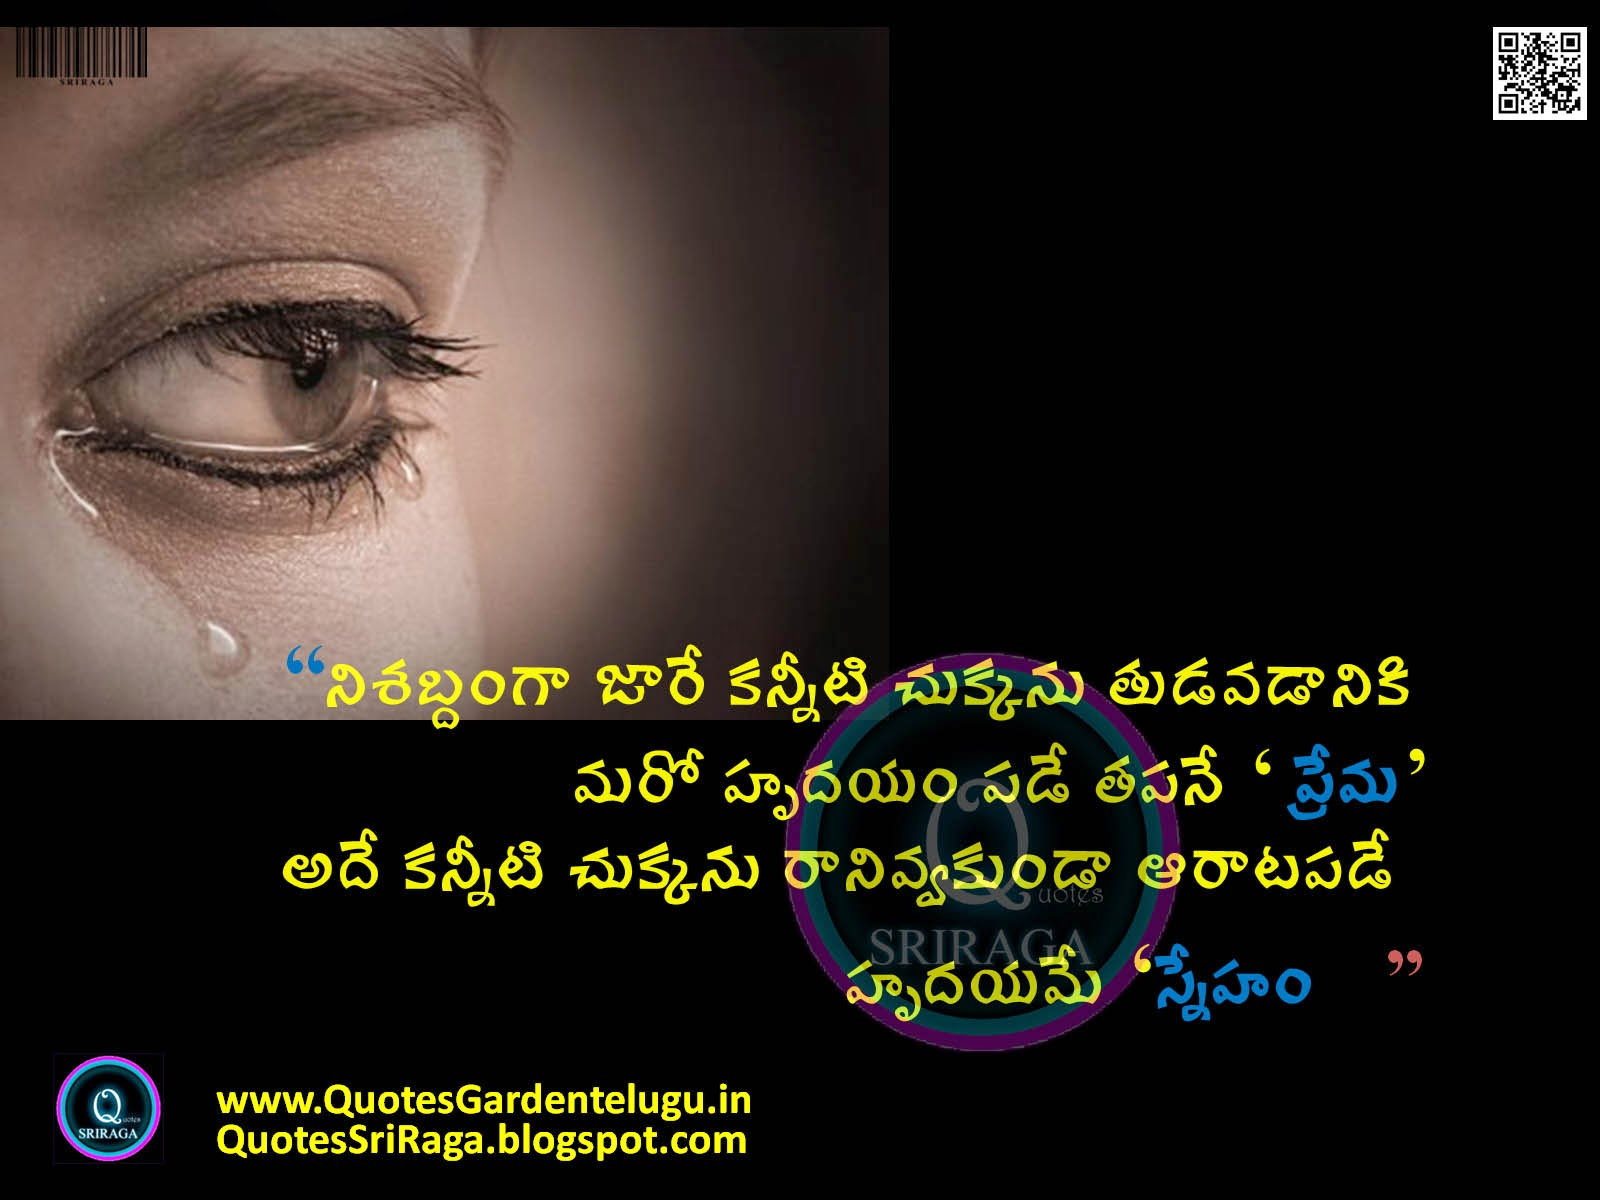 Inspirational Quotes About Friendship Best Telugu Inspirational Quotes About Love And Friendship